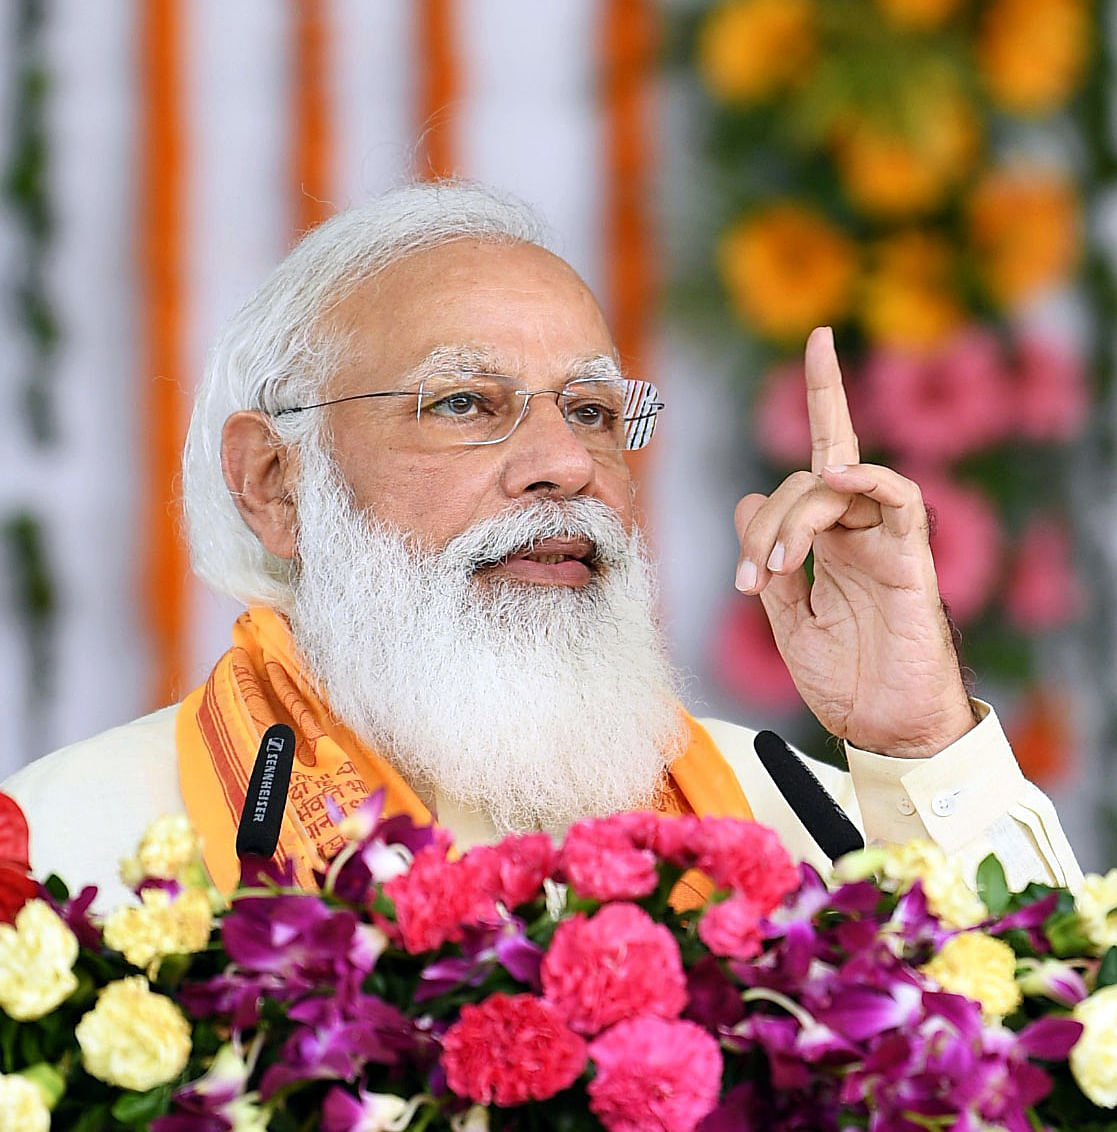 Prime Minister Narendra Modi addresses during the inauguration and foundation stone laying ceremony of multiple development projects, in Varanasi on Thursday.